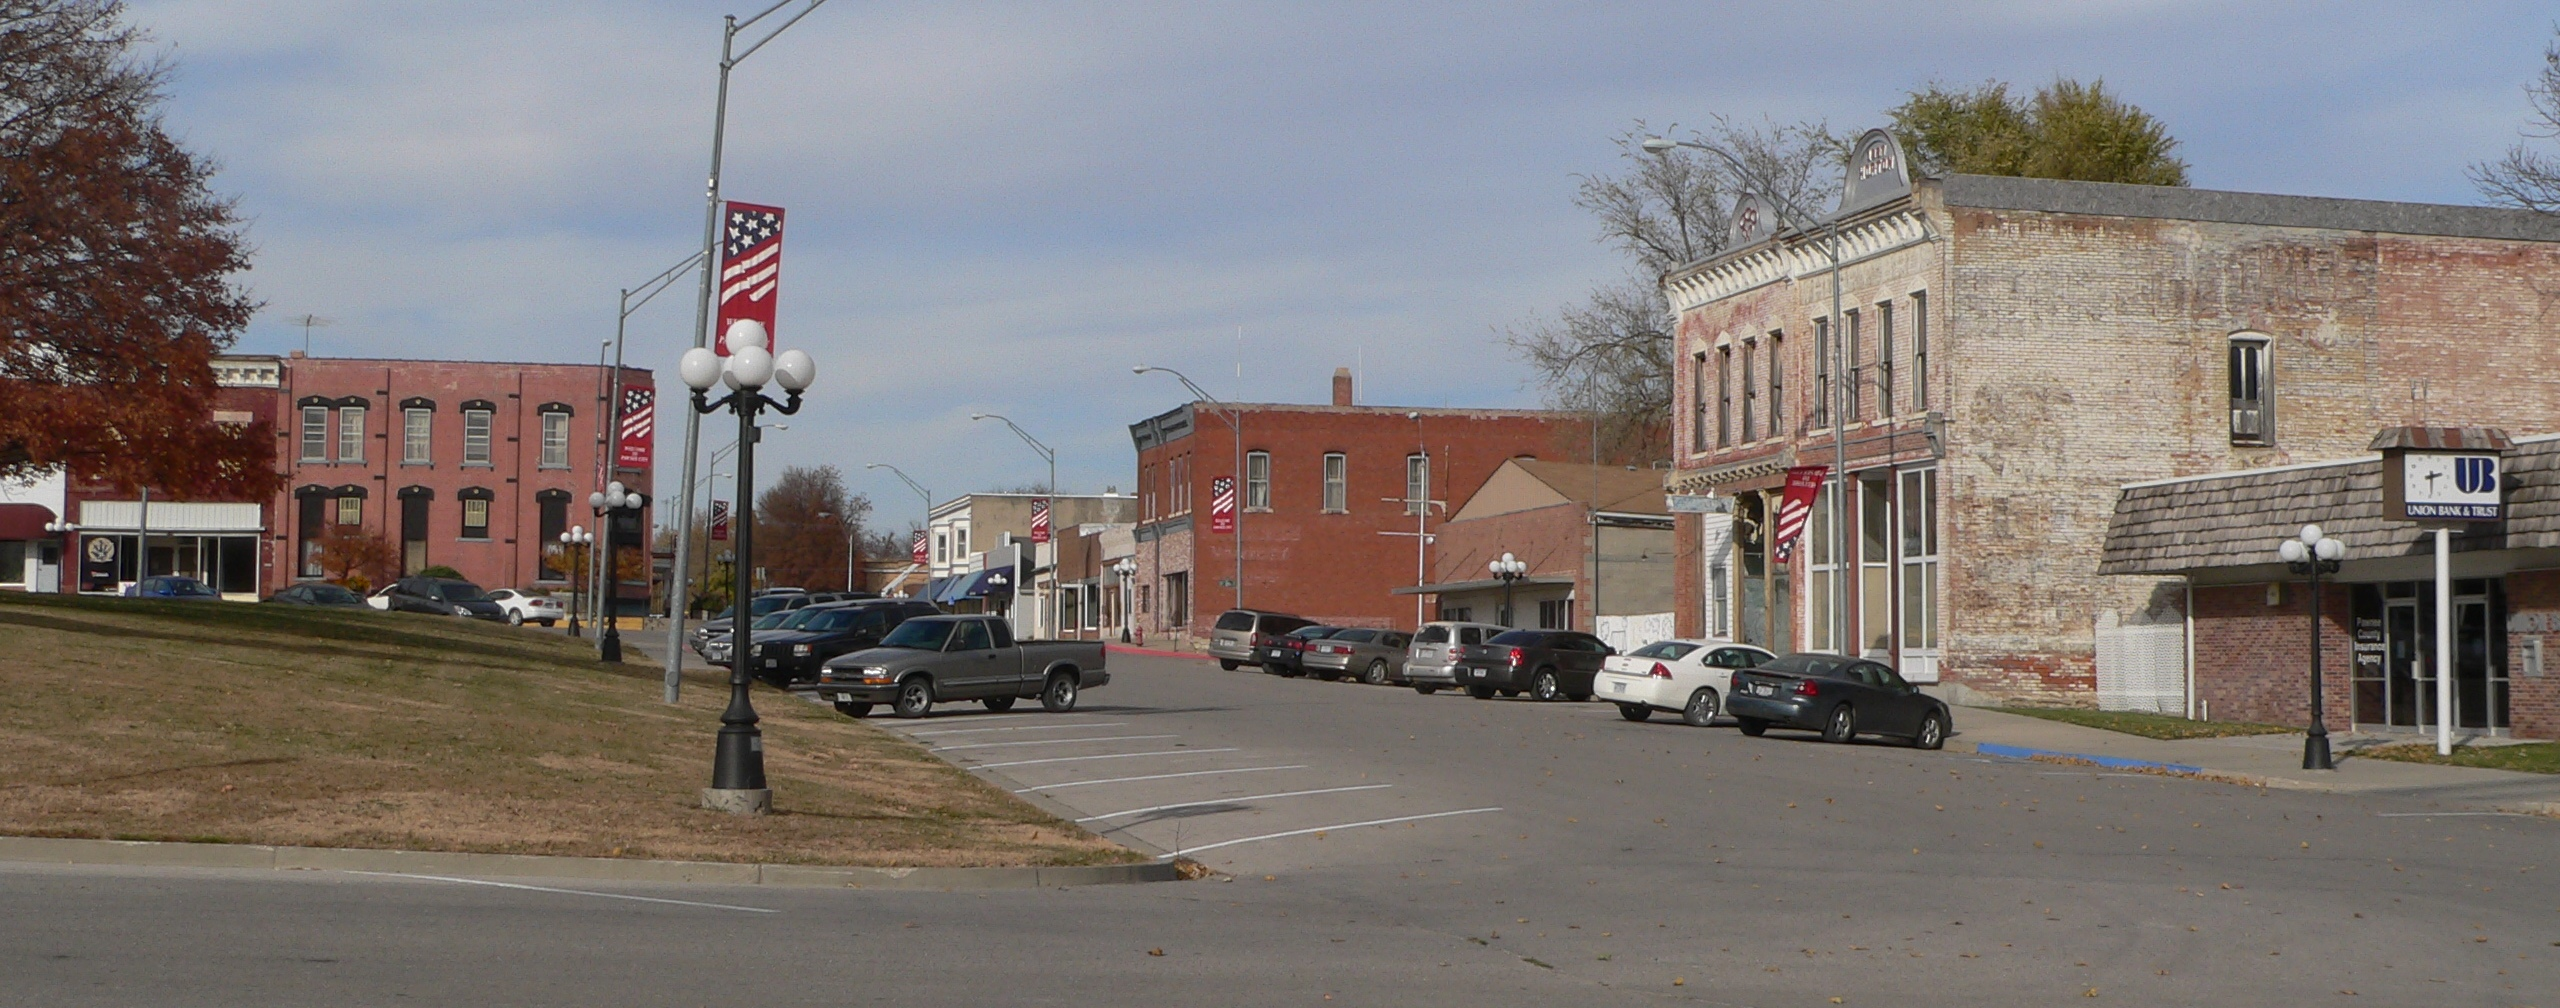 Pawnee City Nebraska >> File Pawnee City Nebraska G From 5th Jpg Wikimedia Commons